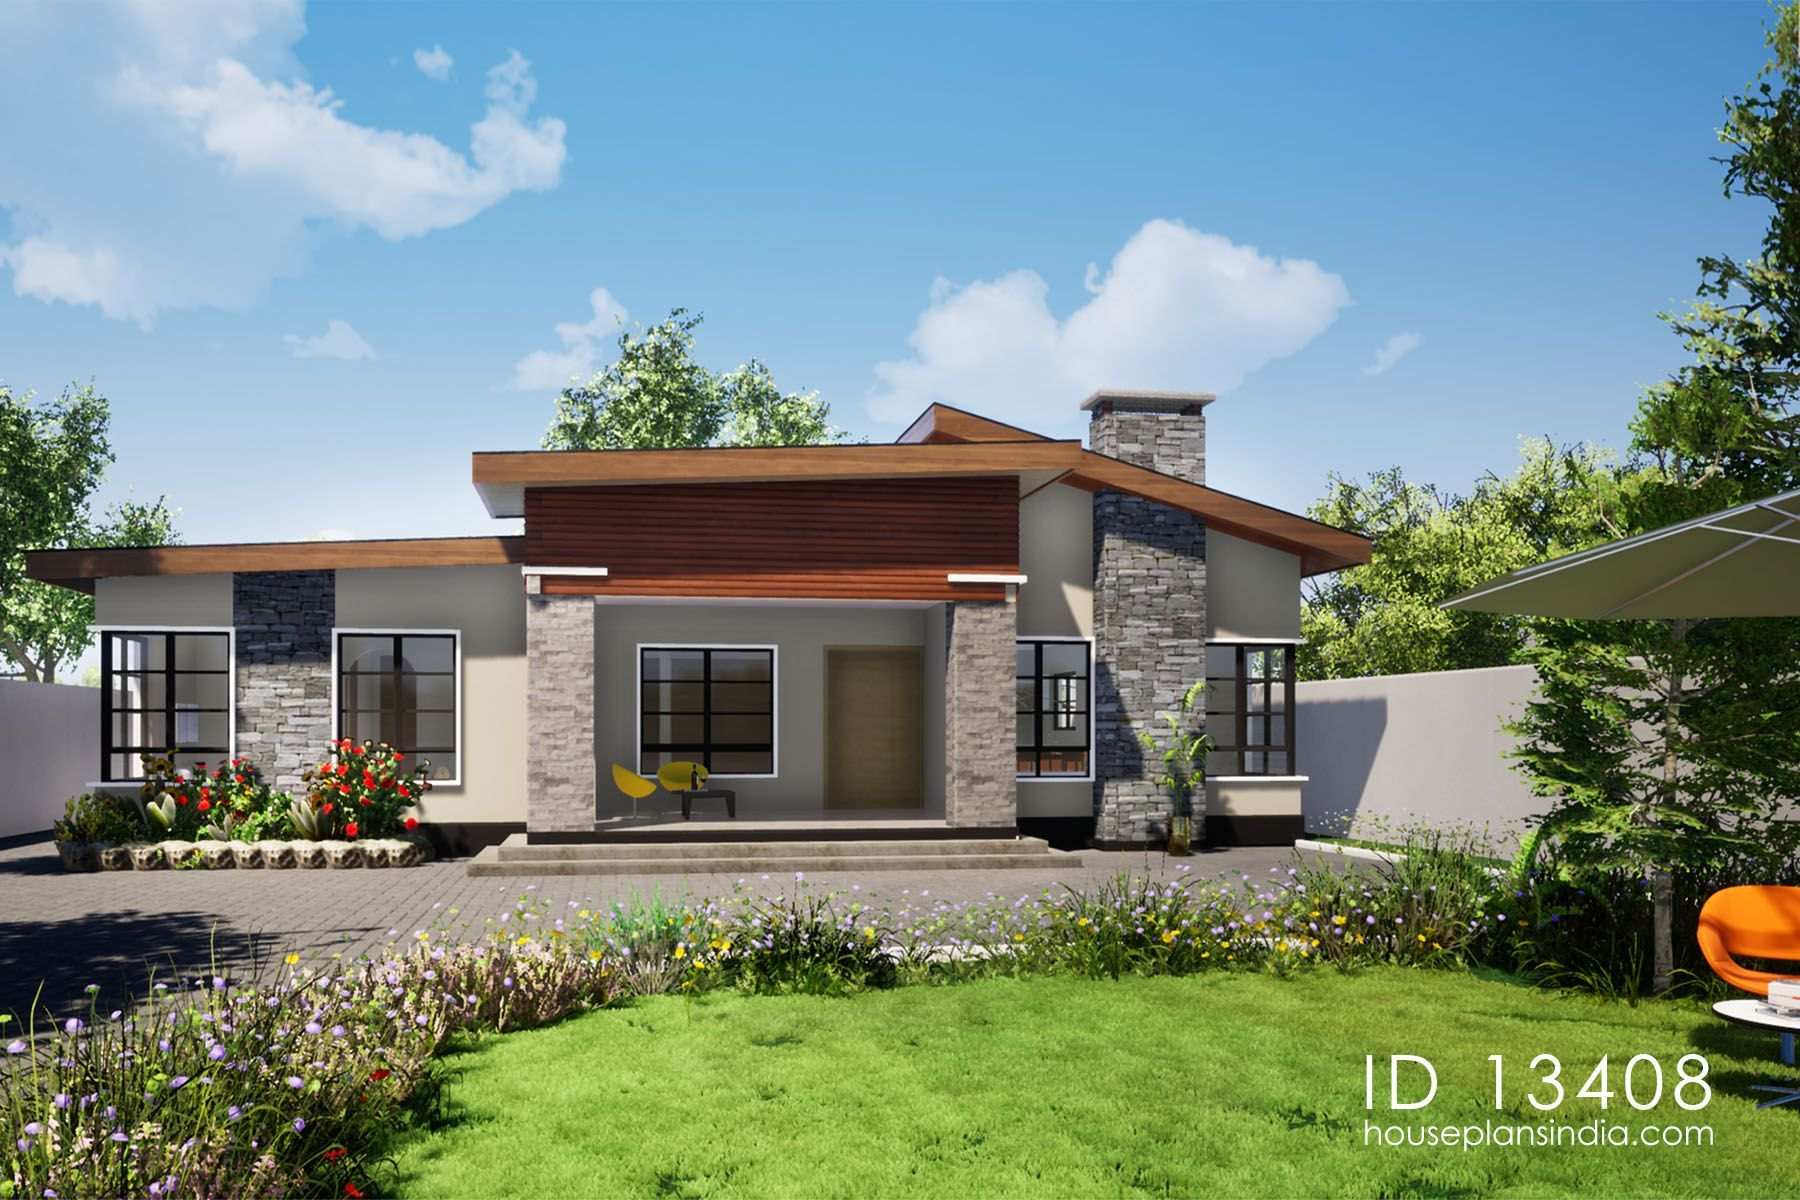 Designer House Id 13408 House Designs By Maramani Flat Roof House Designs Contemporary House Plans House Design